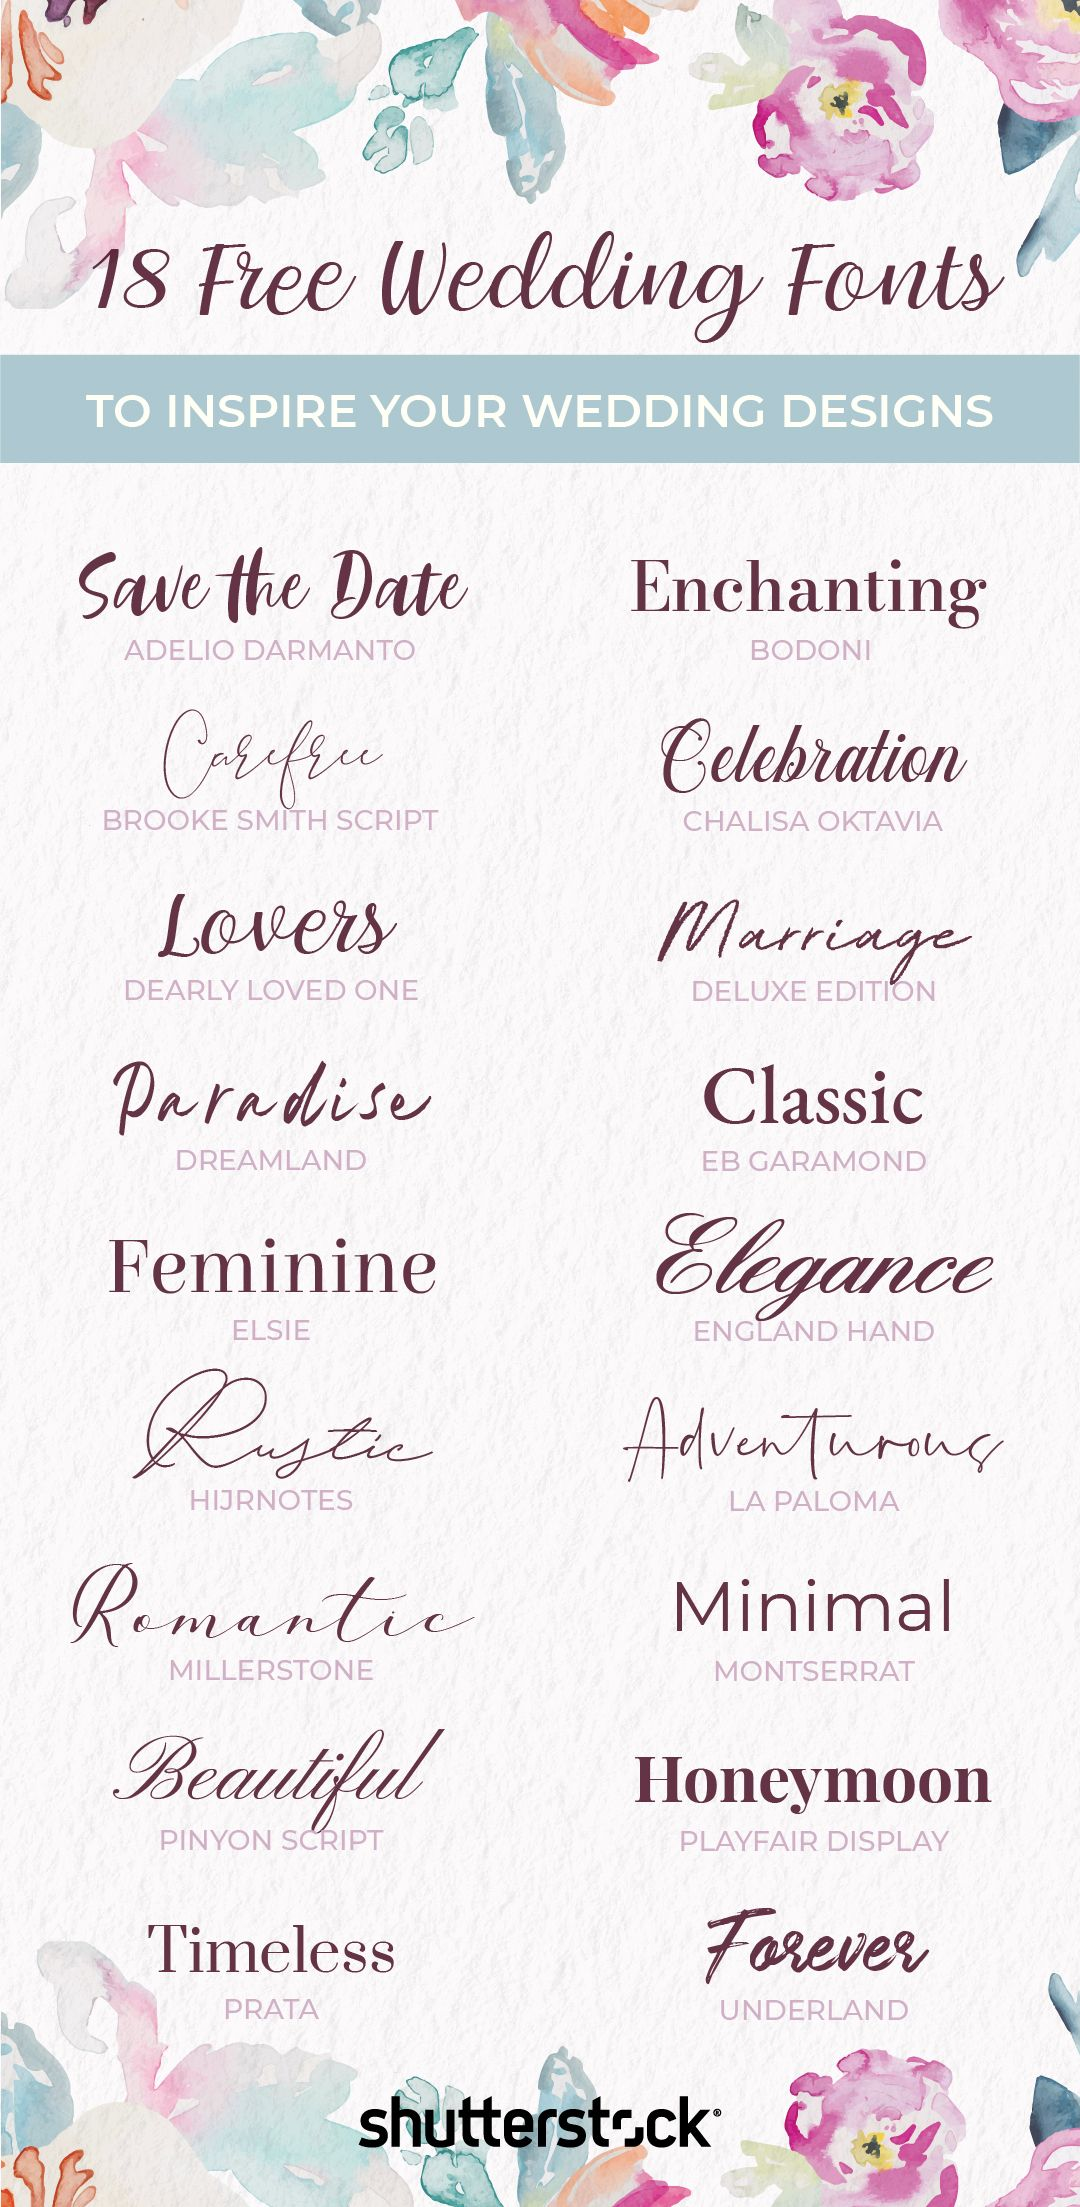 Wedding Ideas 18 Free And Unique Wedding Fonts For